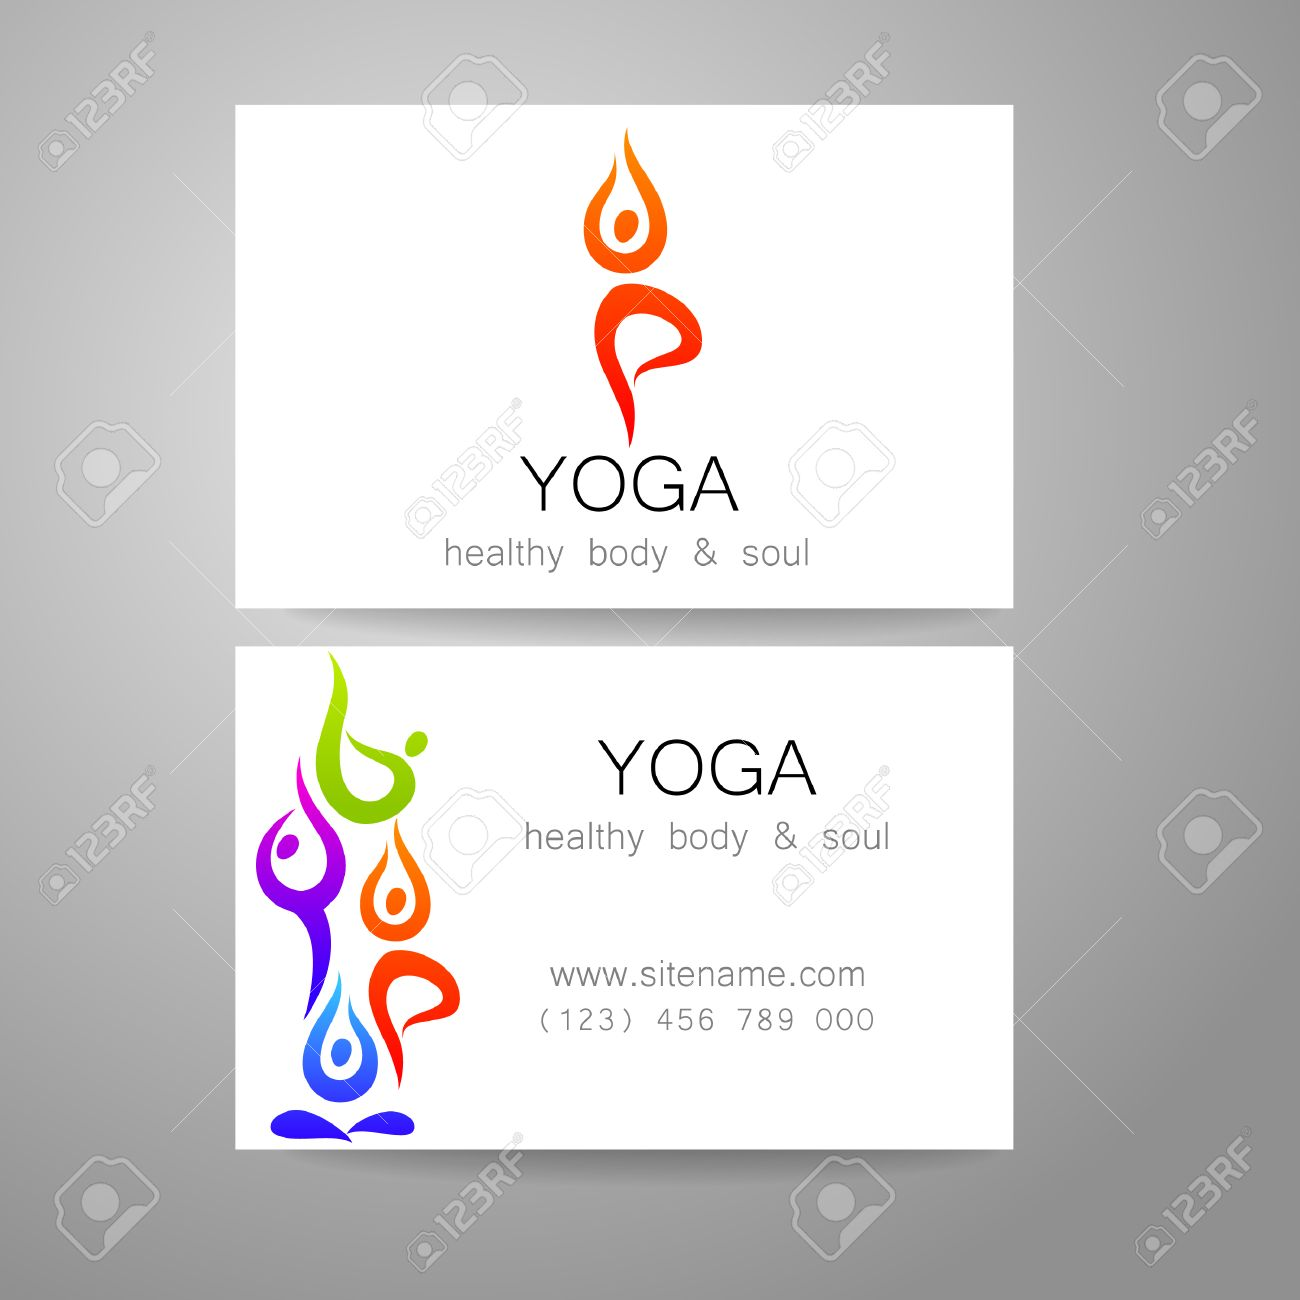 Yoga Logo Sign Design And Business Cards Template For Yoga